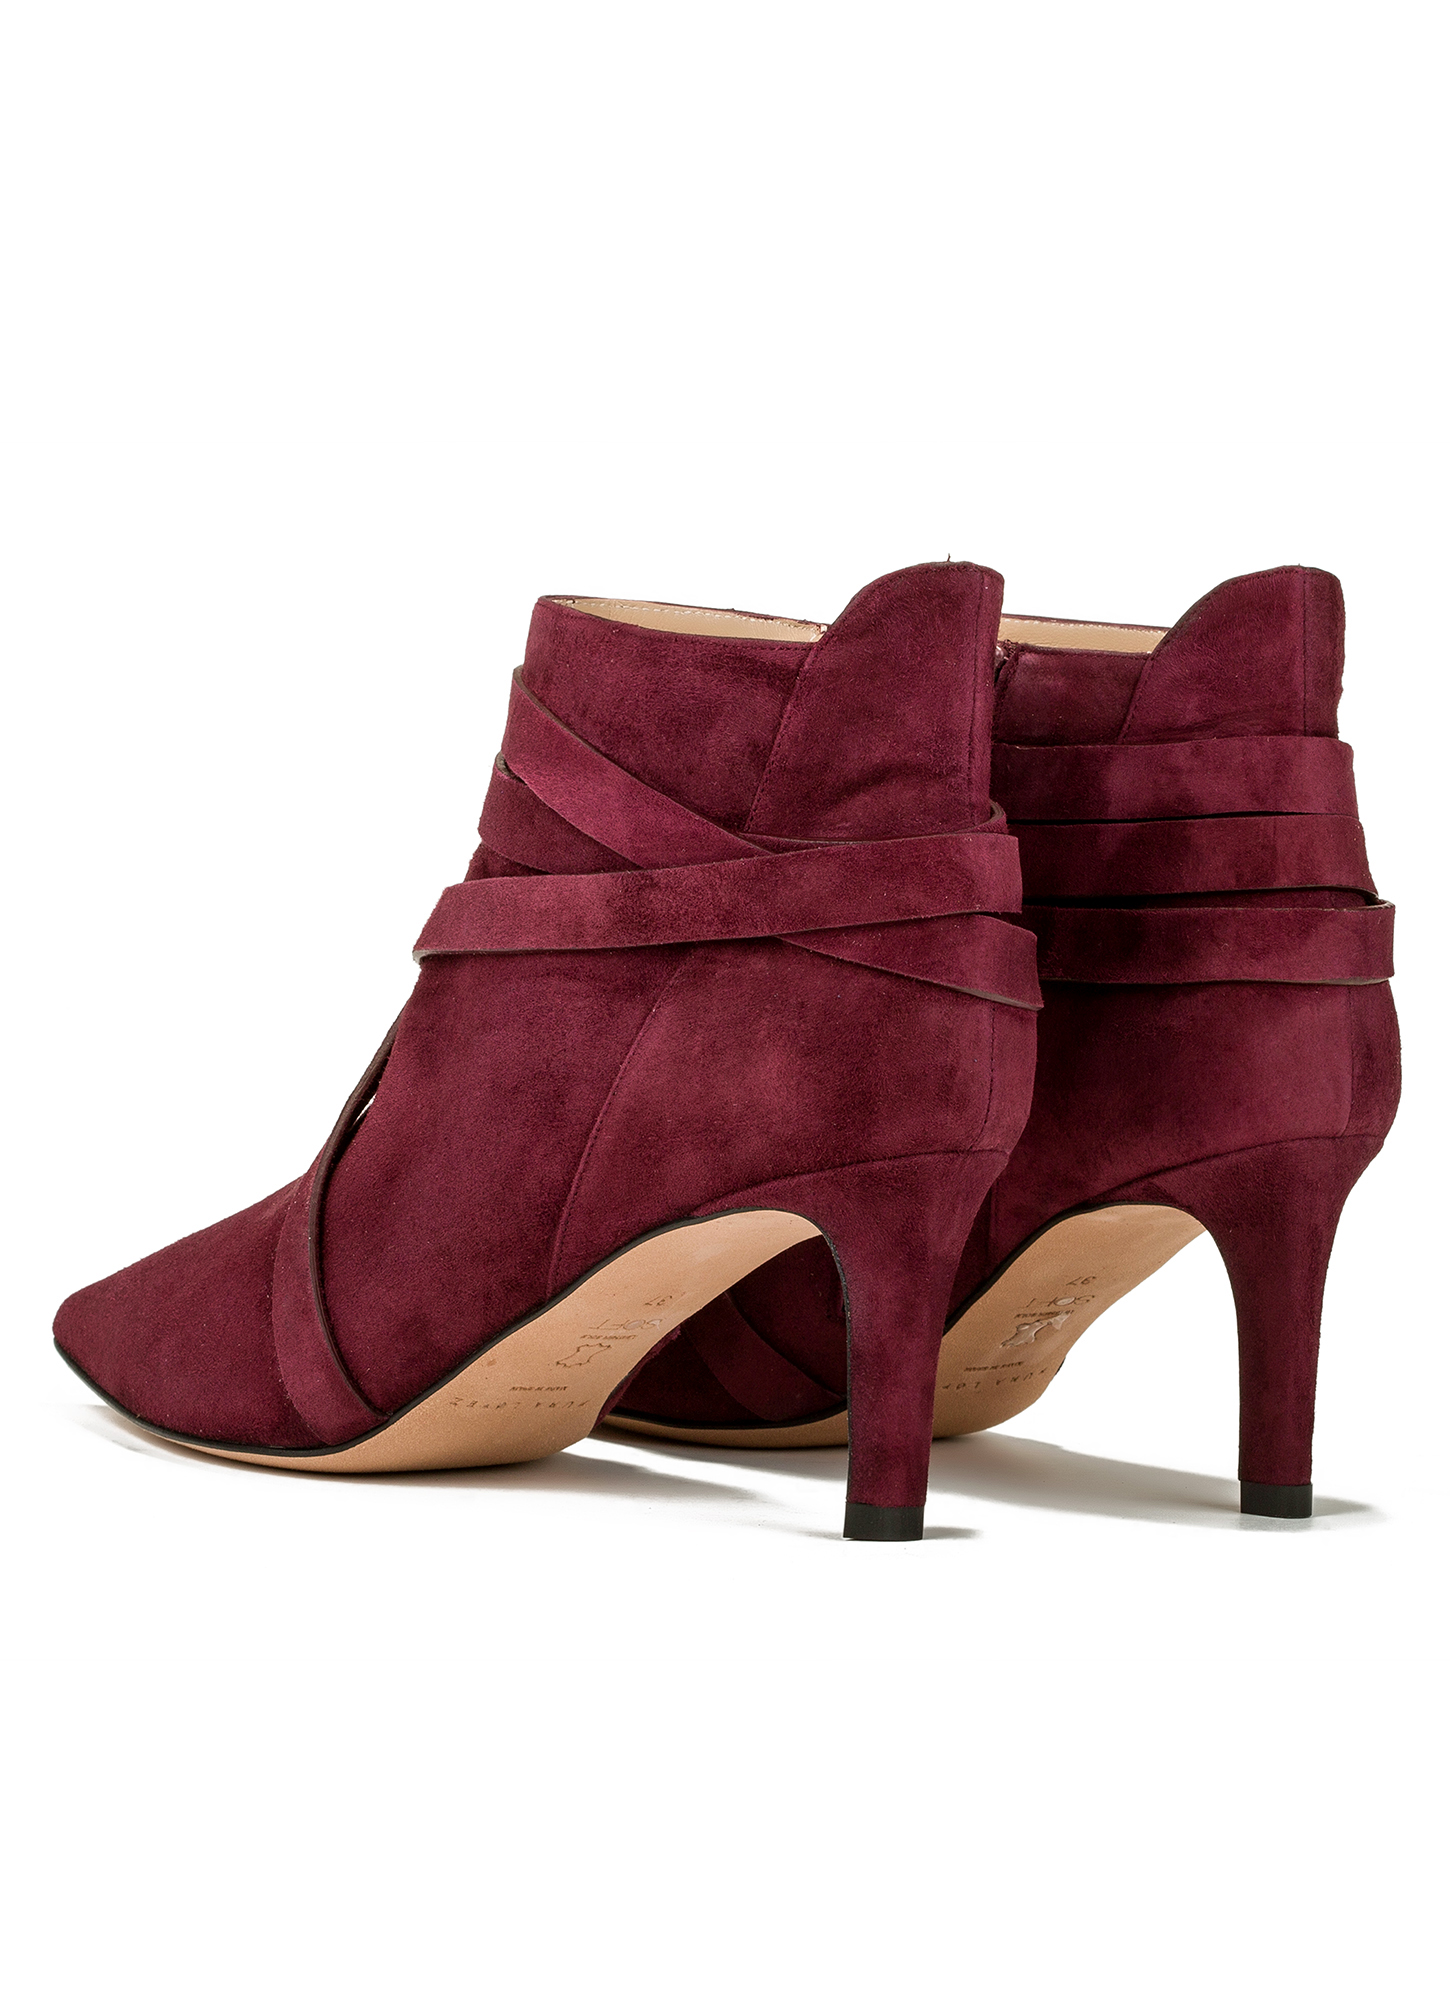 mid heel ankle boots in burgundy suede shoe store